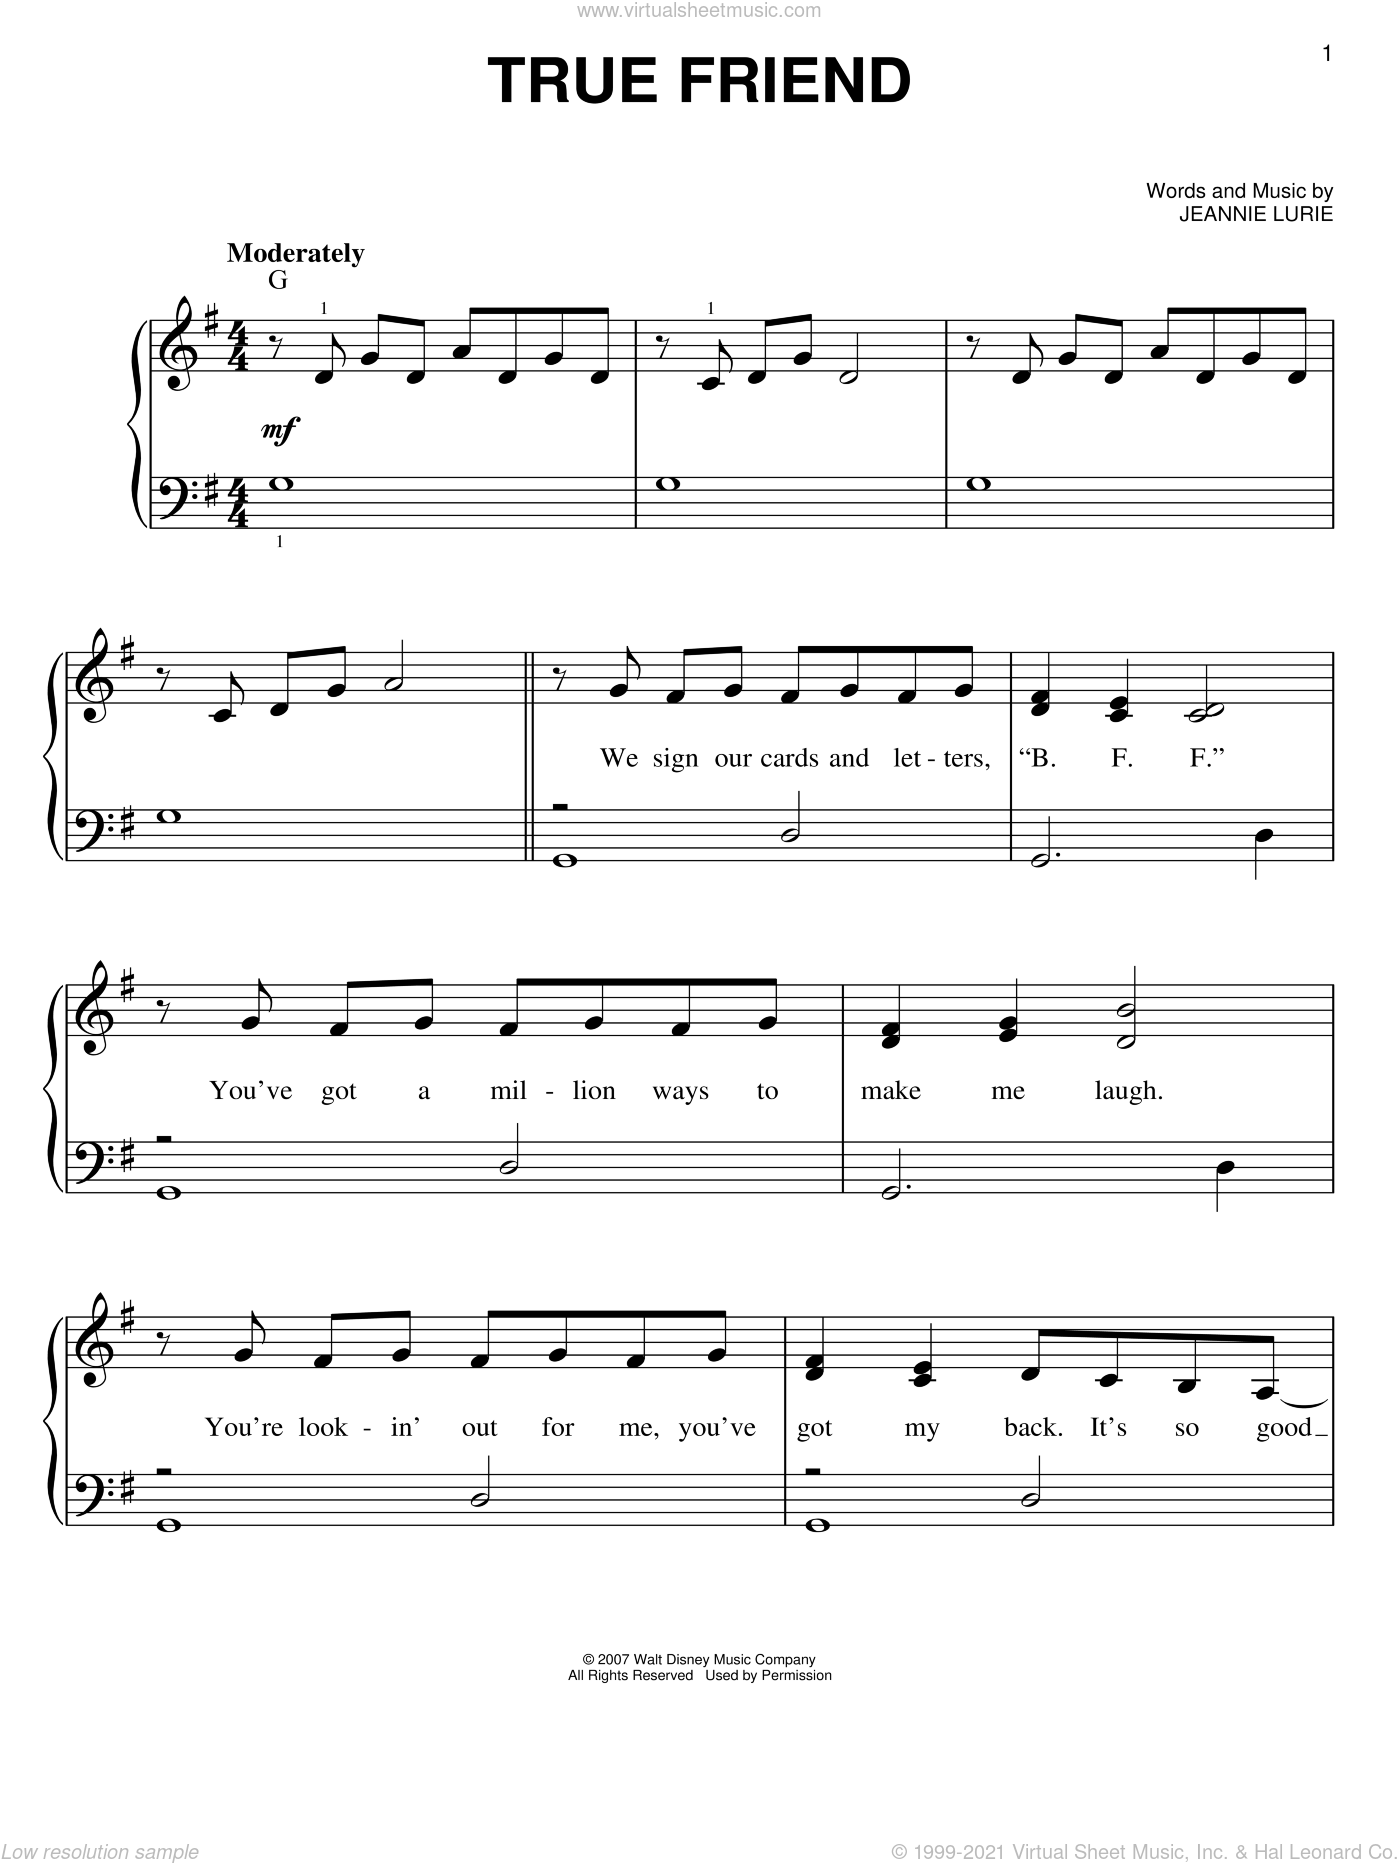 True Friend sheet music for piano solo by Hannah Montana, Miley Cyrus and Jeannie Lurie, easy piano. Score Image Preview.